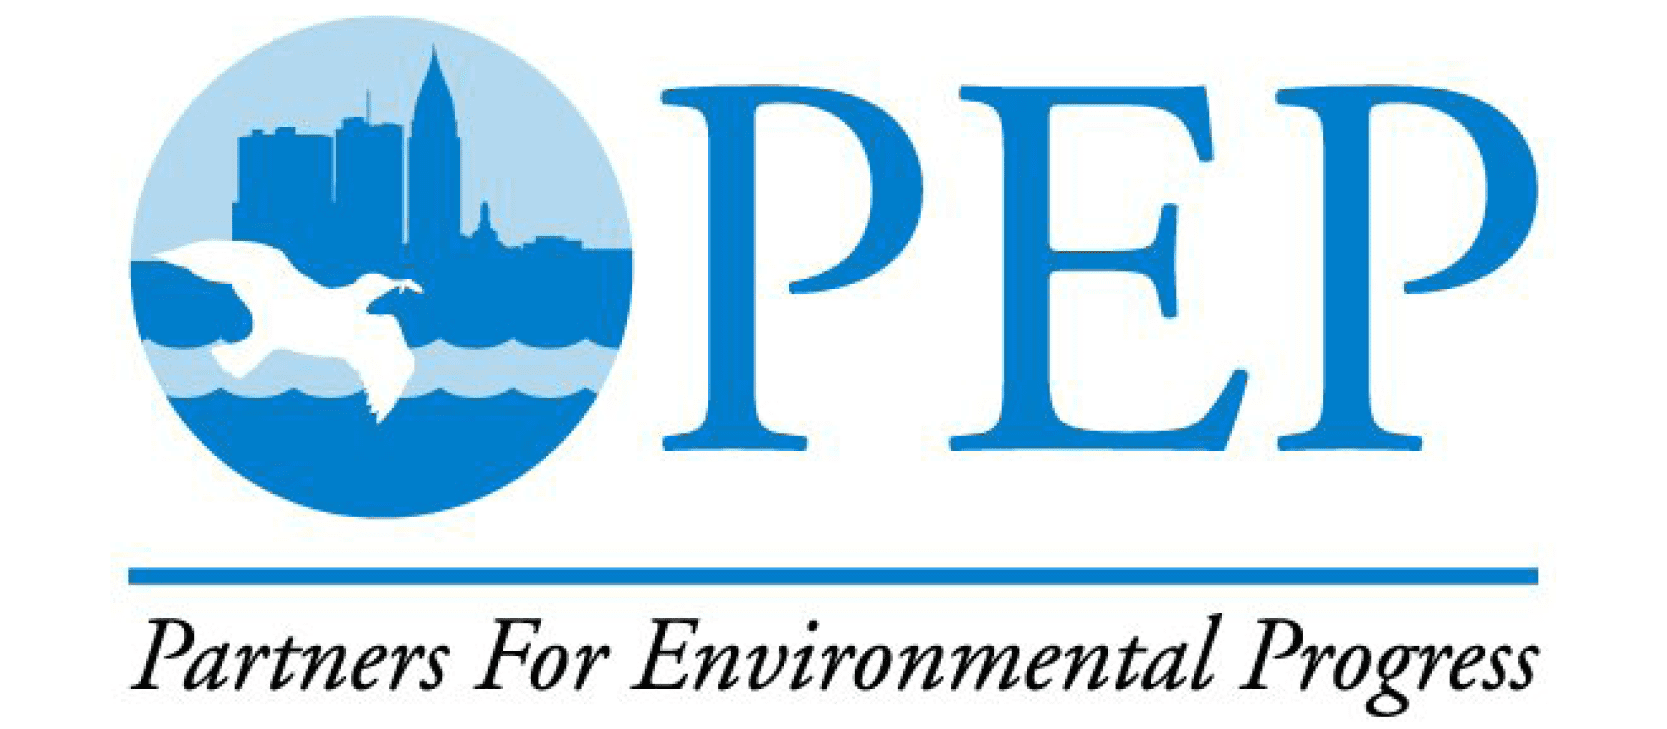 Cypress Employment Partners For Environmental Progress Affiliate